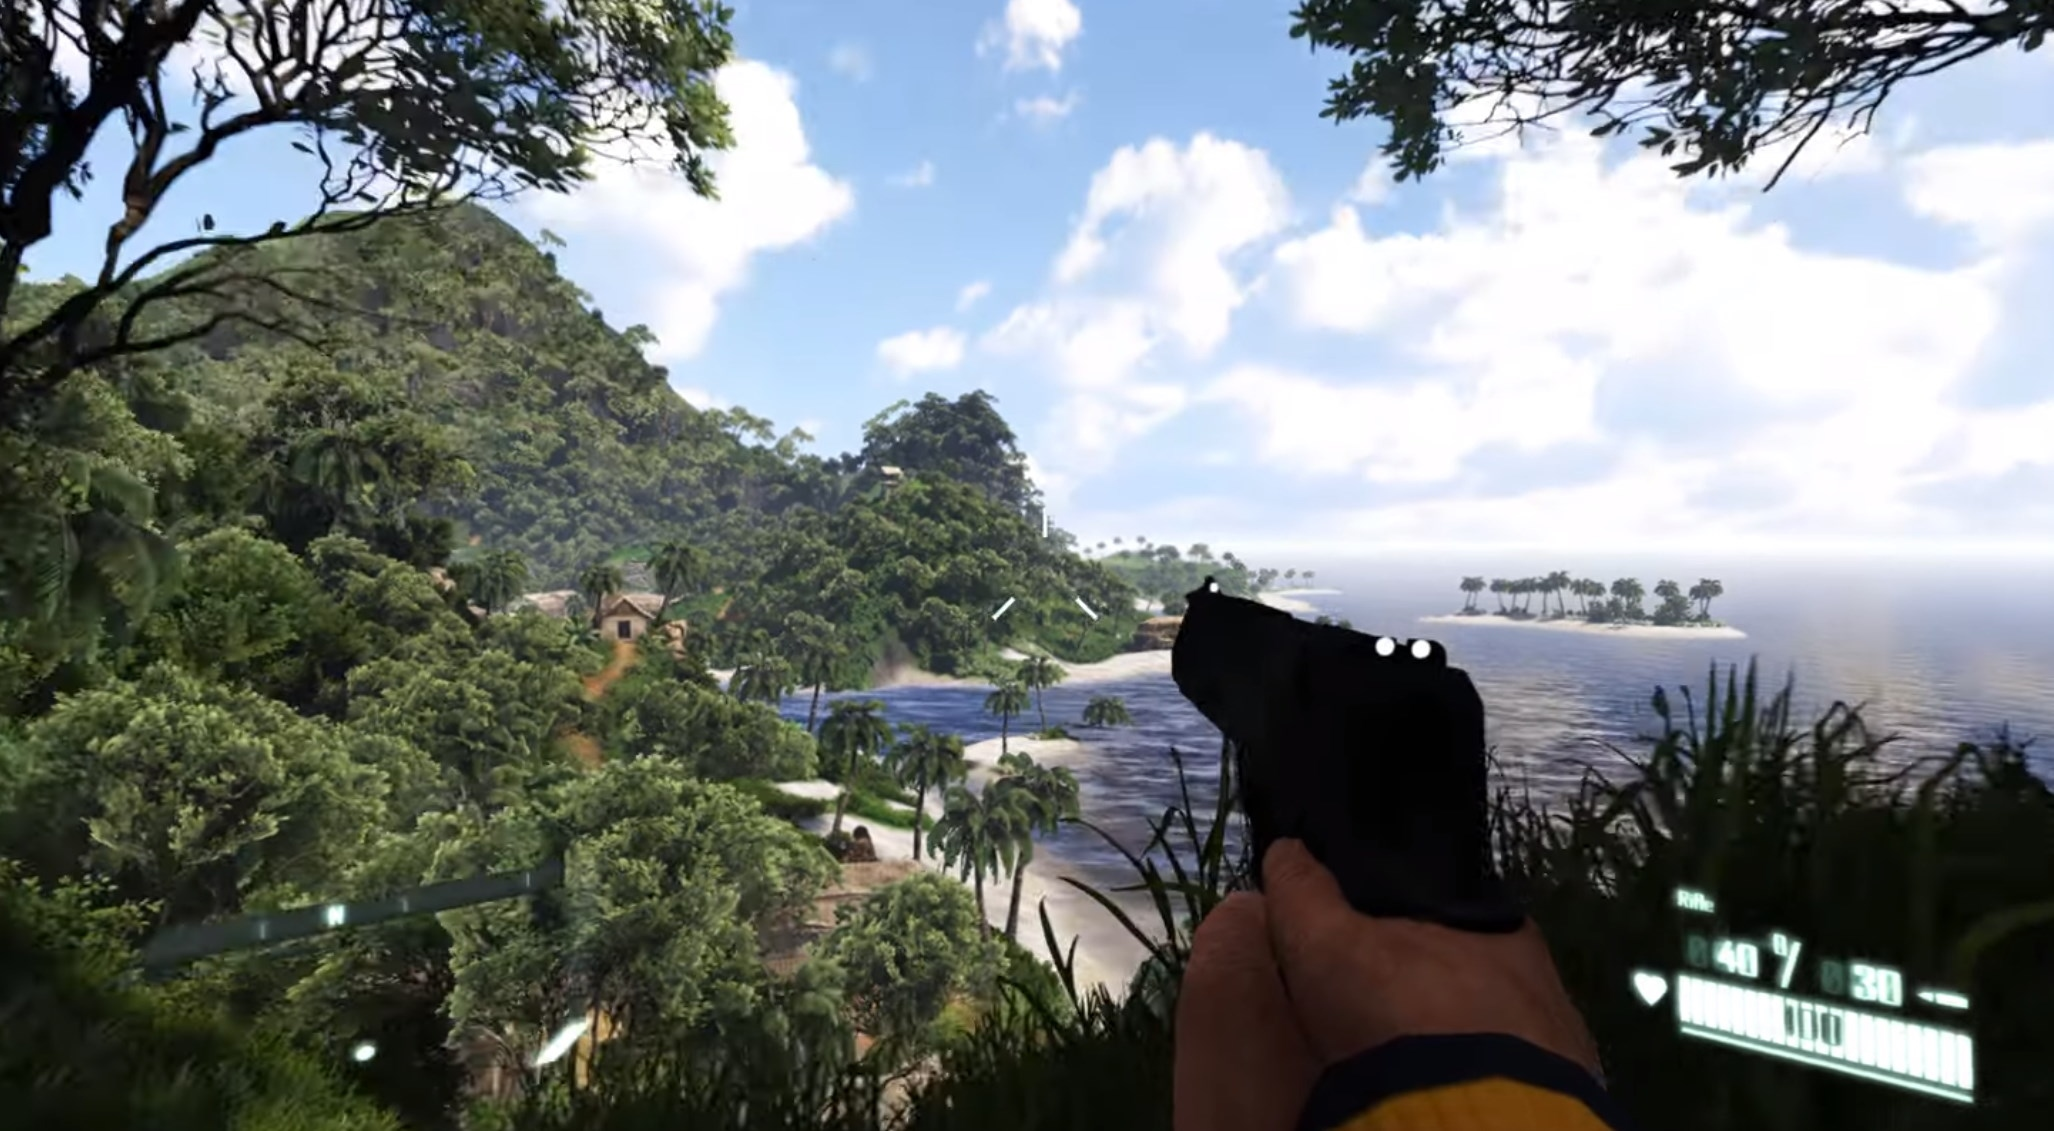 Ukazka Z Fan Remaku Far Cry Na Cryengine 5 Sector